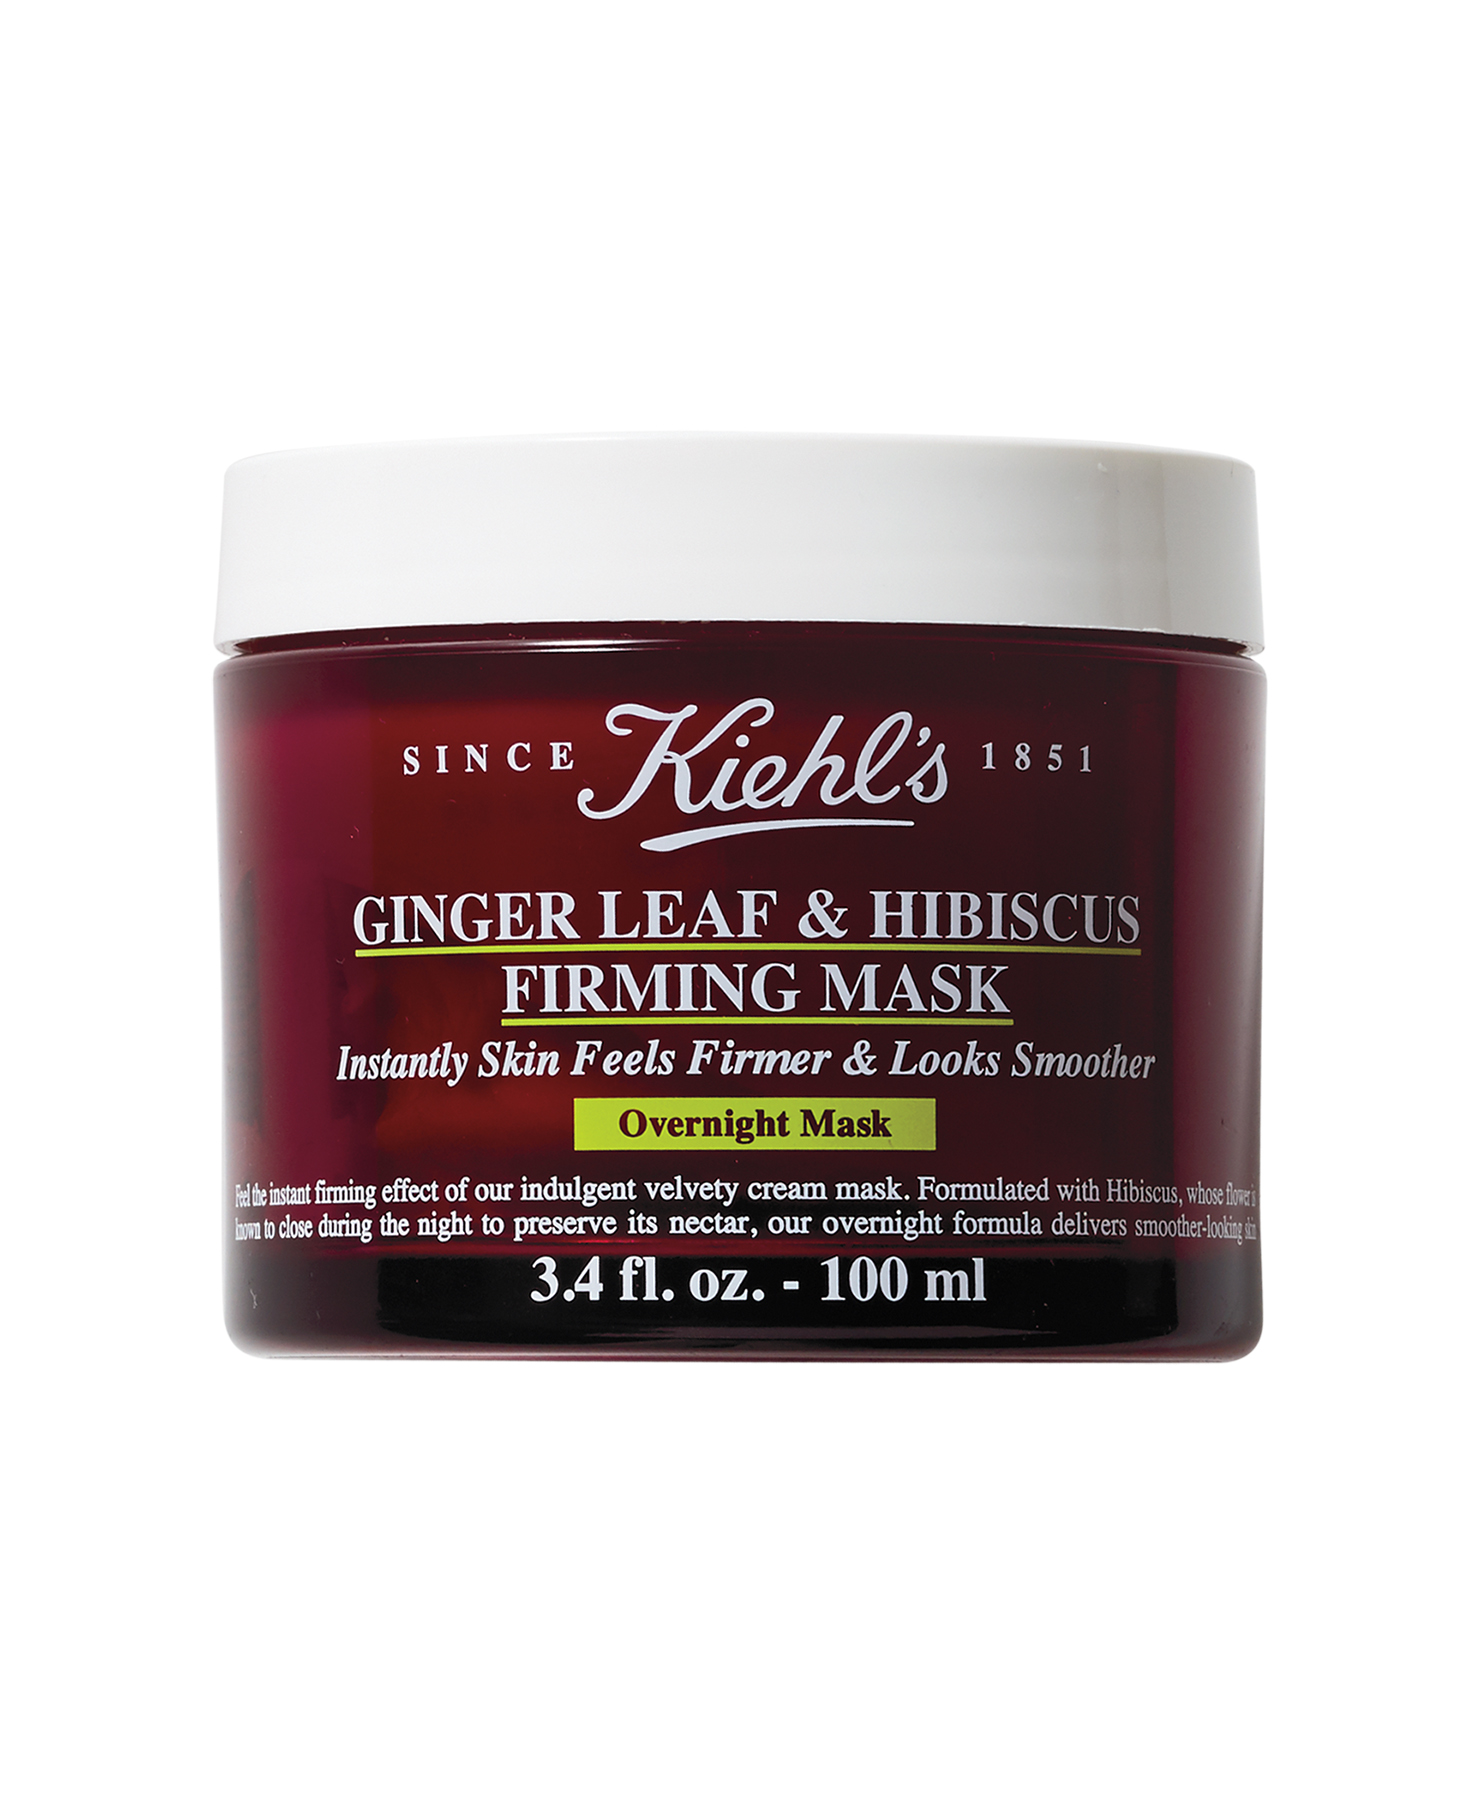 Kiehl's Ginger Leaf & Hibiscus Firming Mask